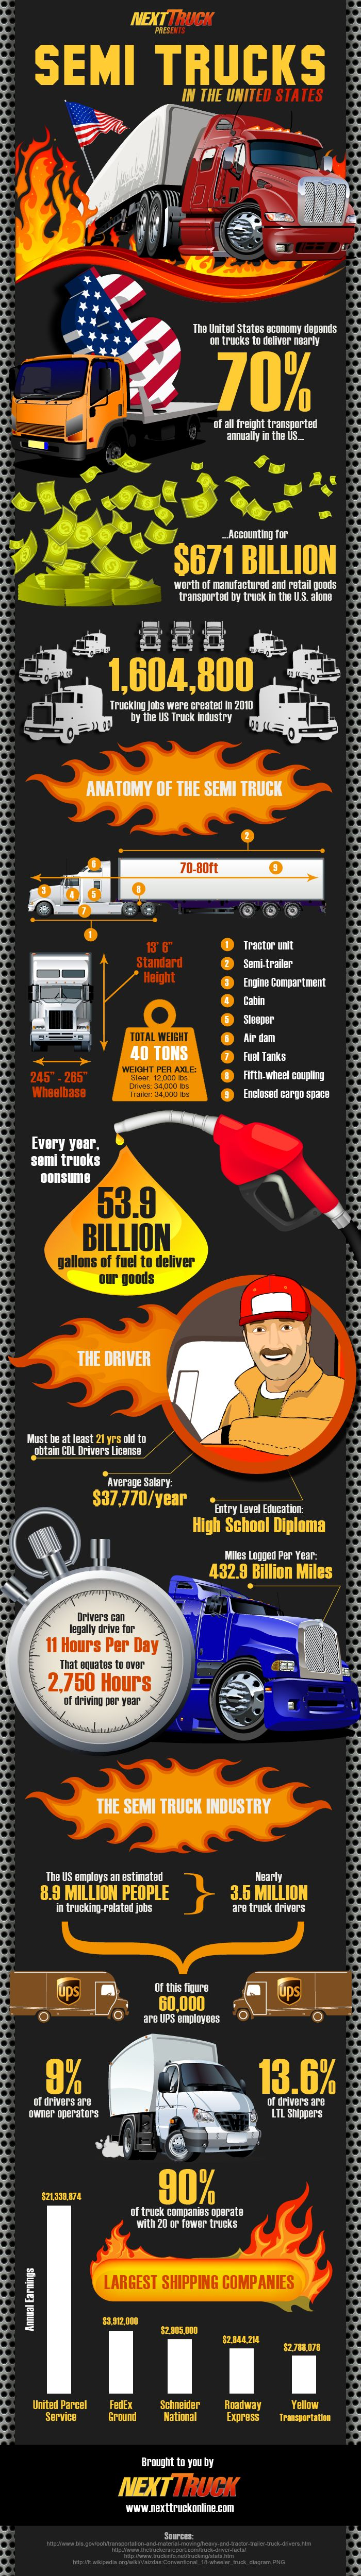 The infographic goes through interesting facts like how many gallons of fuel are consumed each year to deliver goods in the US. It includes useful graphics depicting the various parts and aspects of a semi truck. Interesting facts about truck drivers are also included, like the average salary of truck drivers in the US or the total number of hours a truck driver can spend on the road each day.